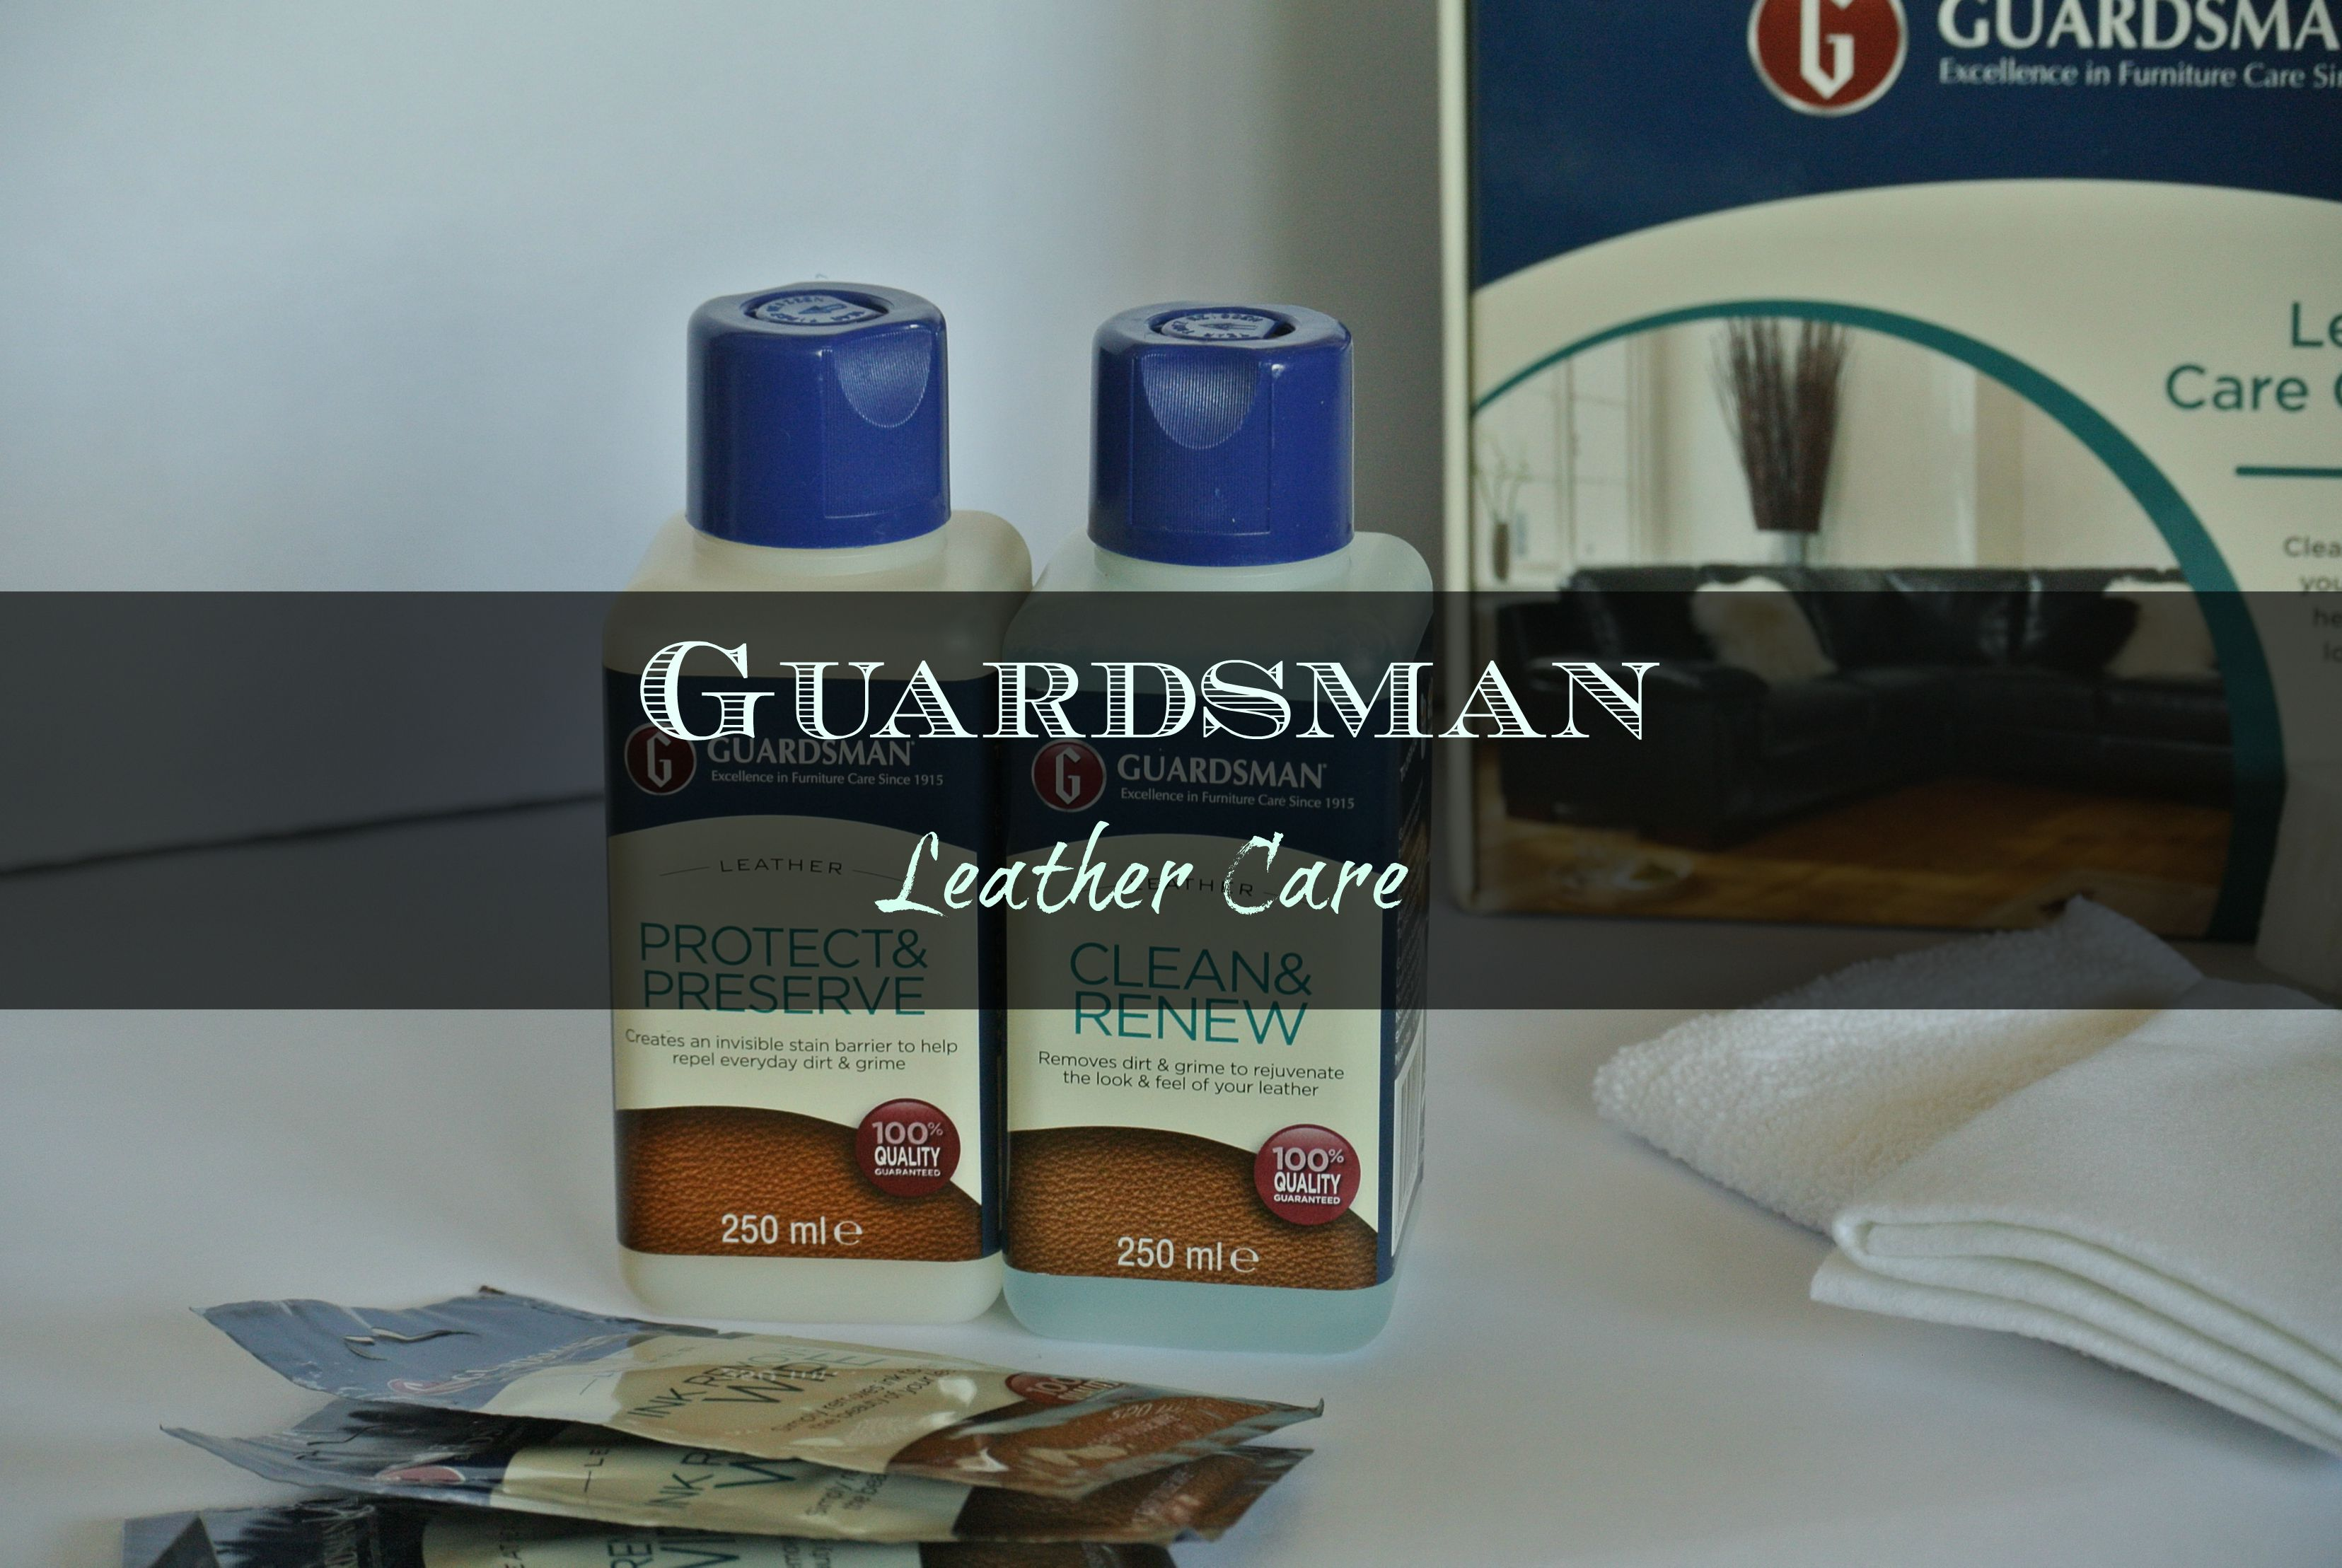 leather sofa cleaning kit bunk bed price guardsman care madame gourmand lifestylemadame